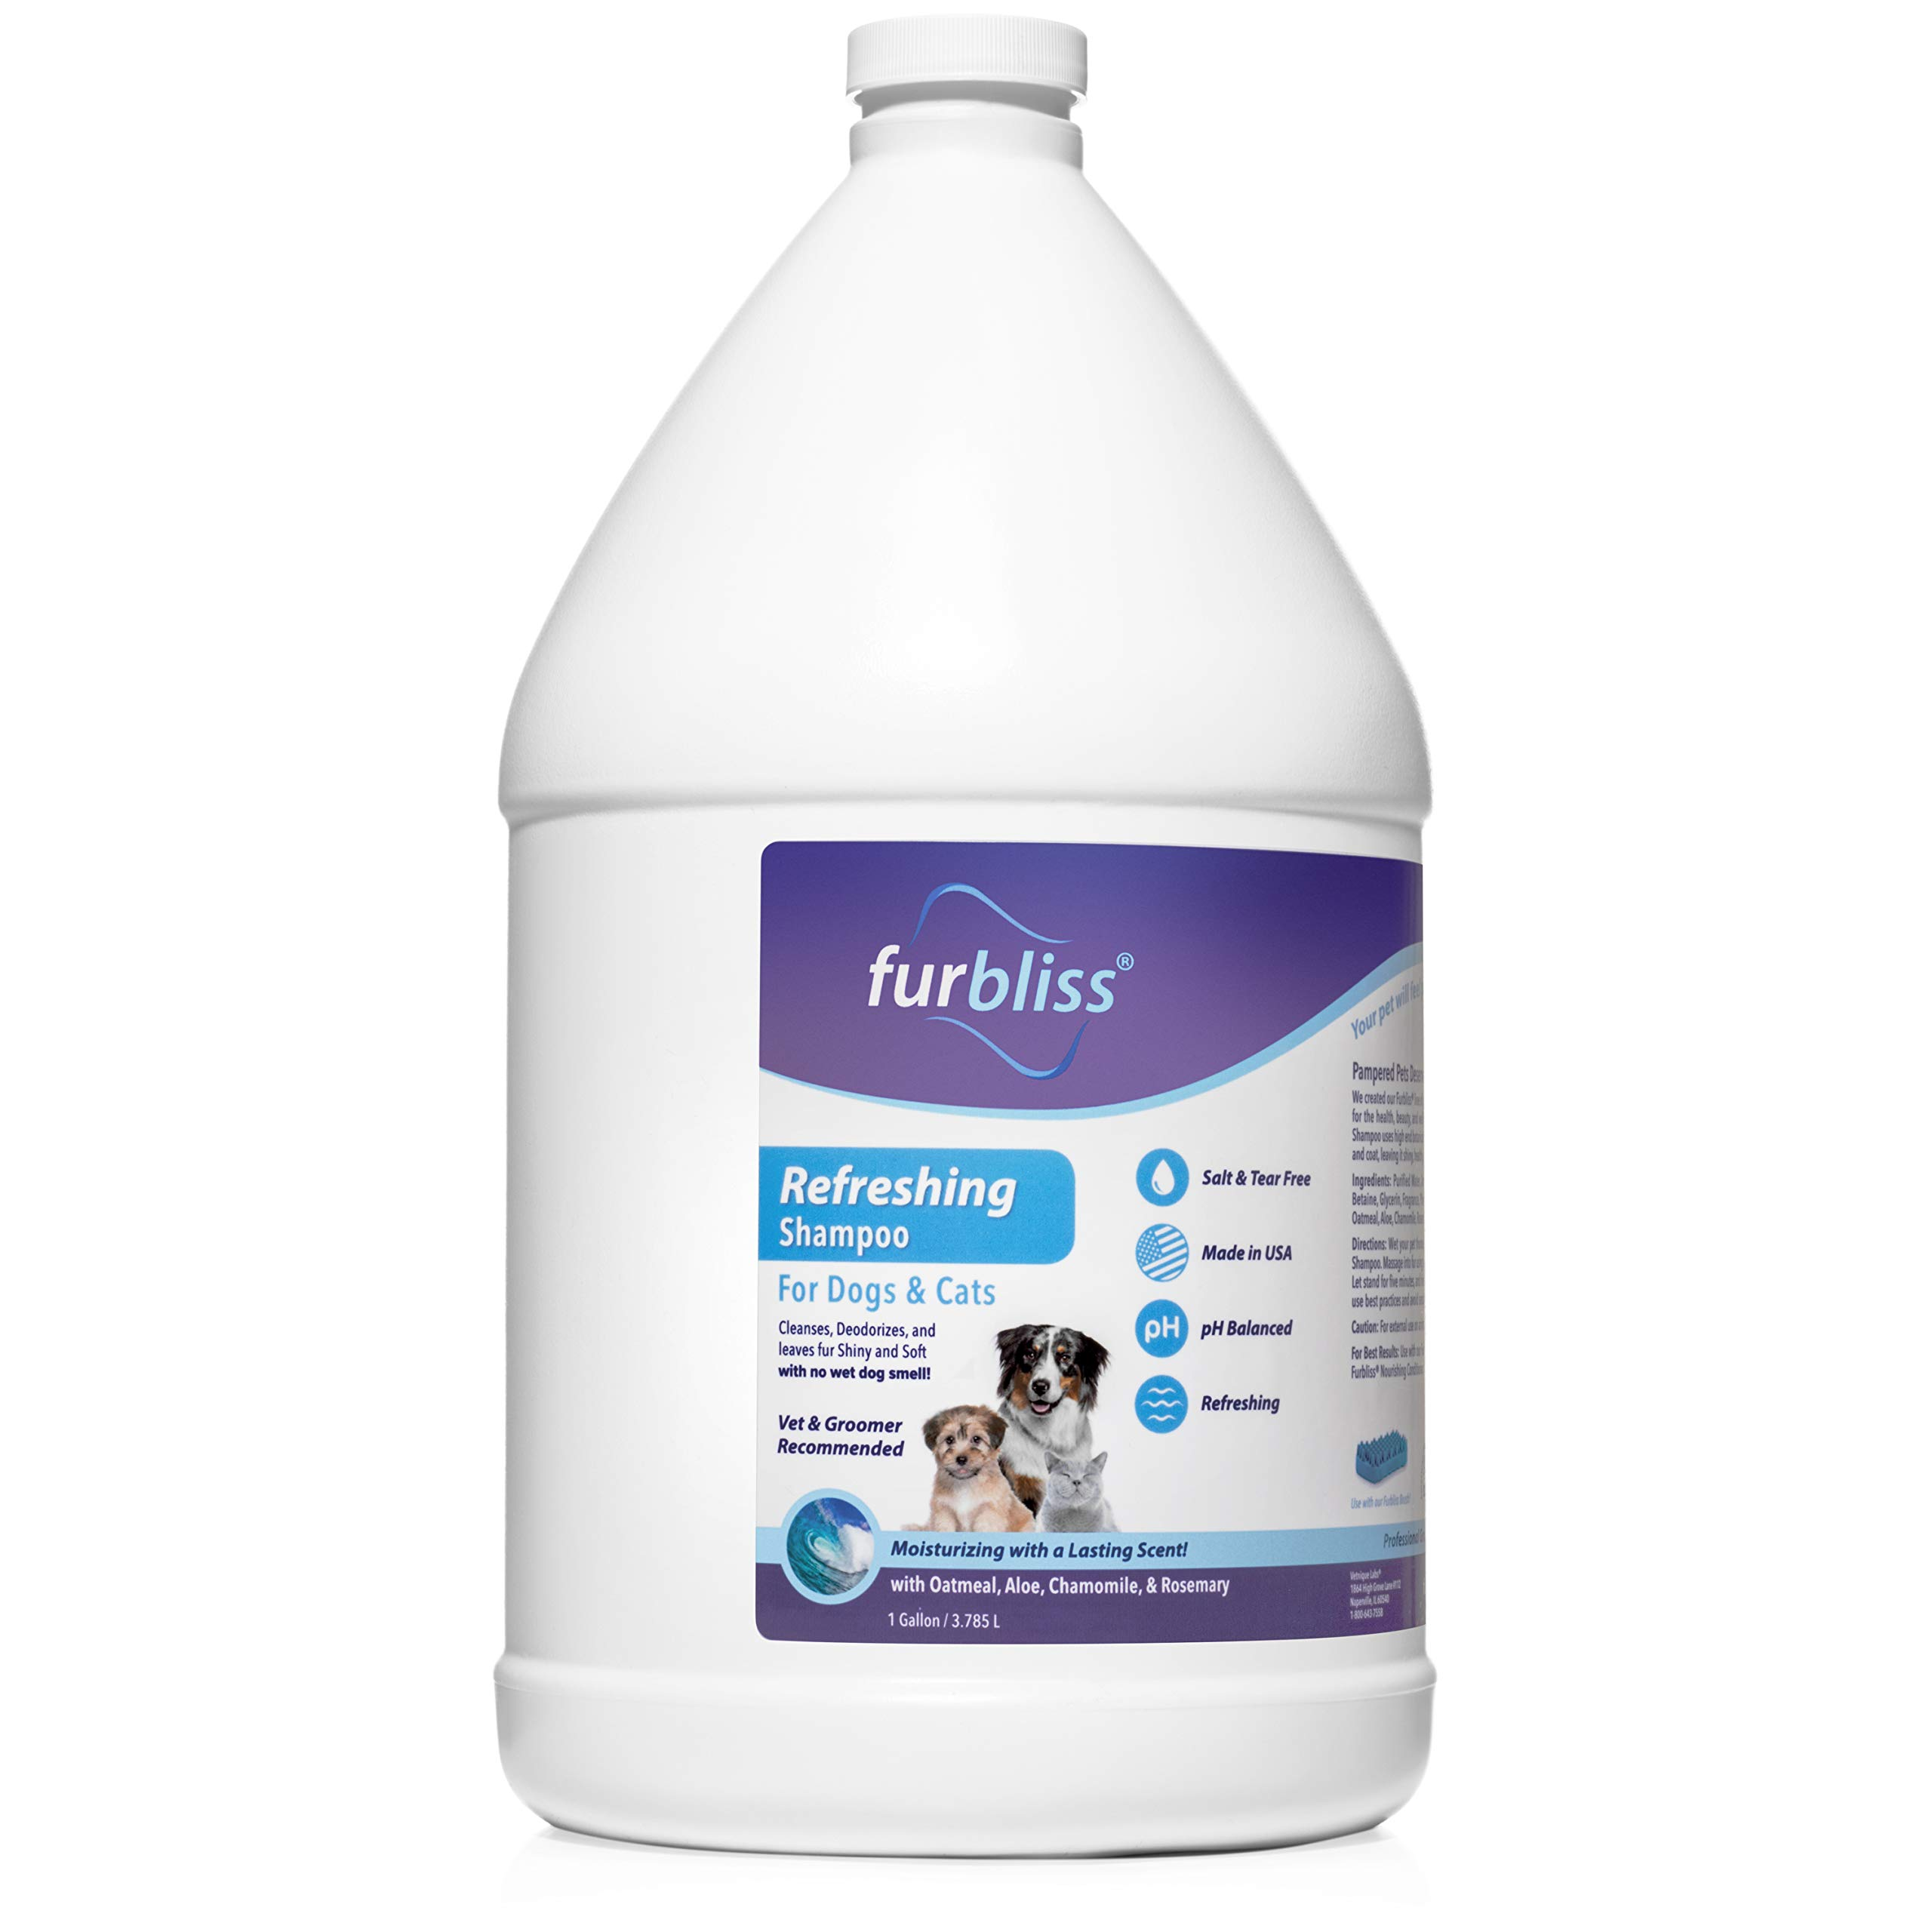 Furbliss Refreshing Dog & Cat Pet Shampoo with Essential Oils - No Wet Dog Smell, Tear Free, Smelly Dog Relief (Gallon)